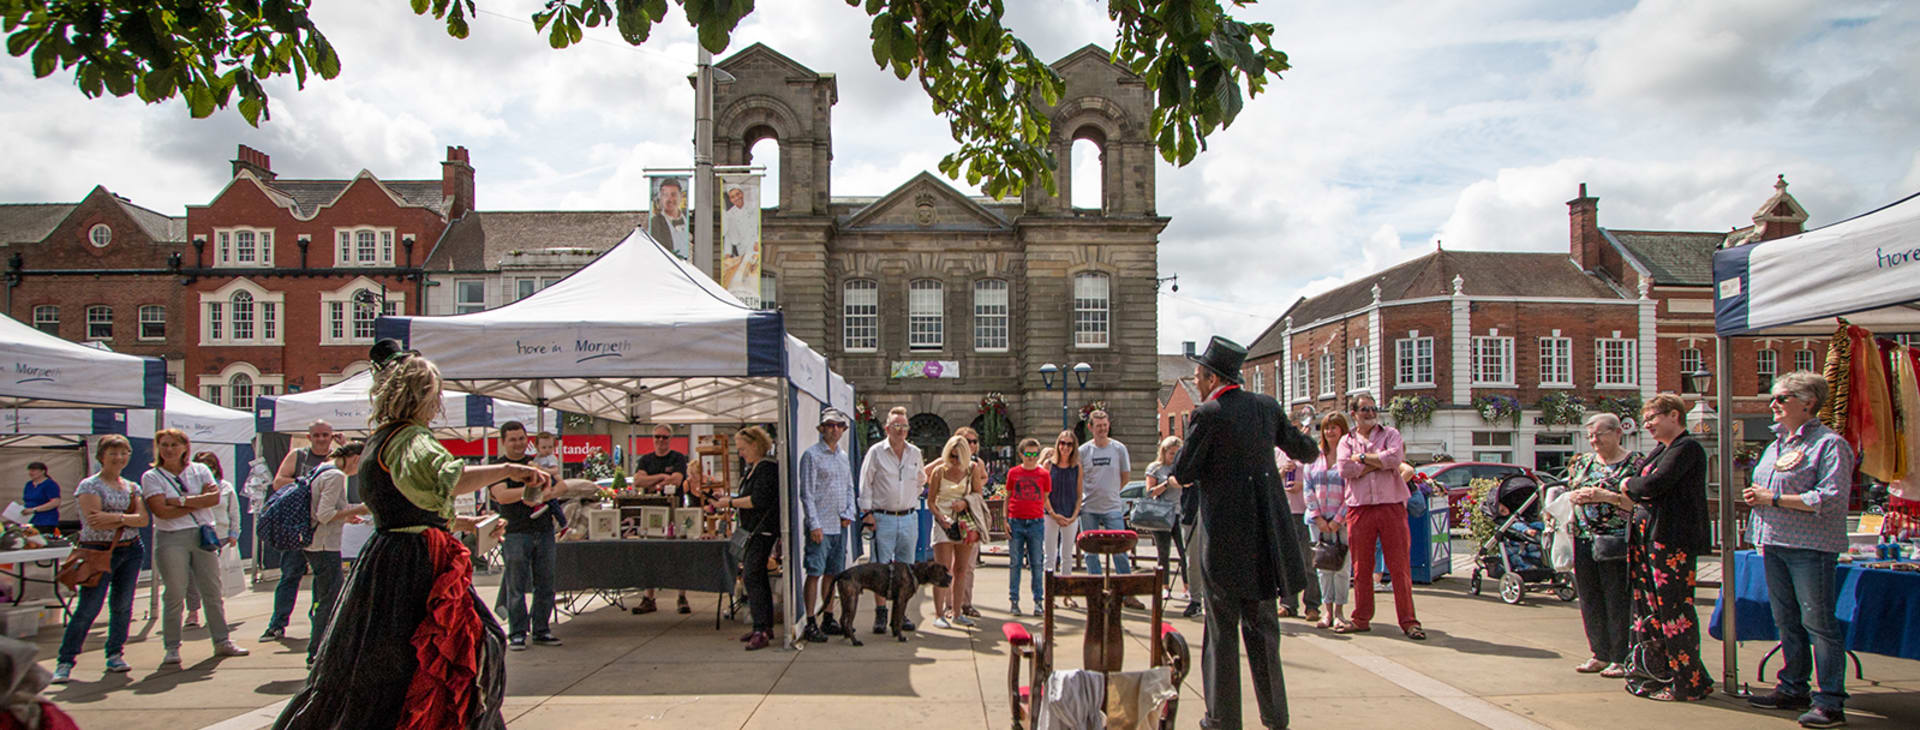 Dr McCavity pop up performance in Morpeth Market Place